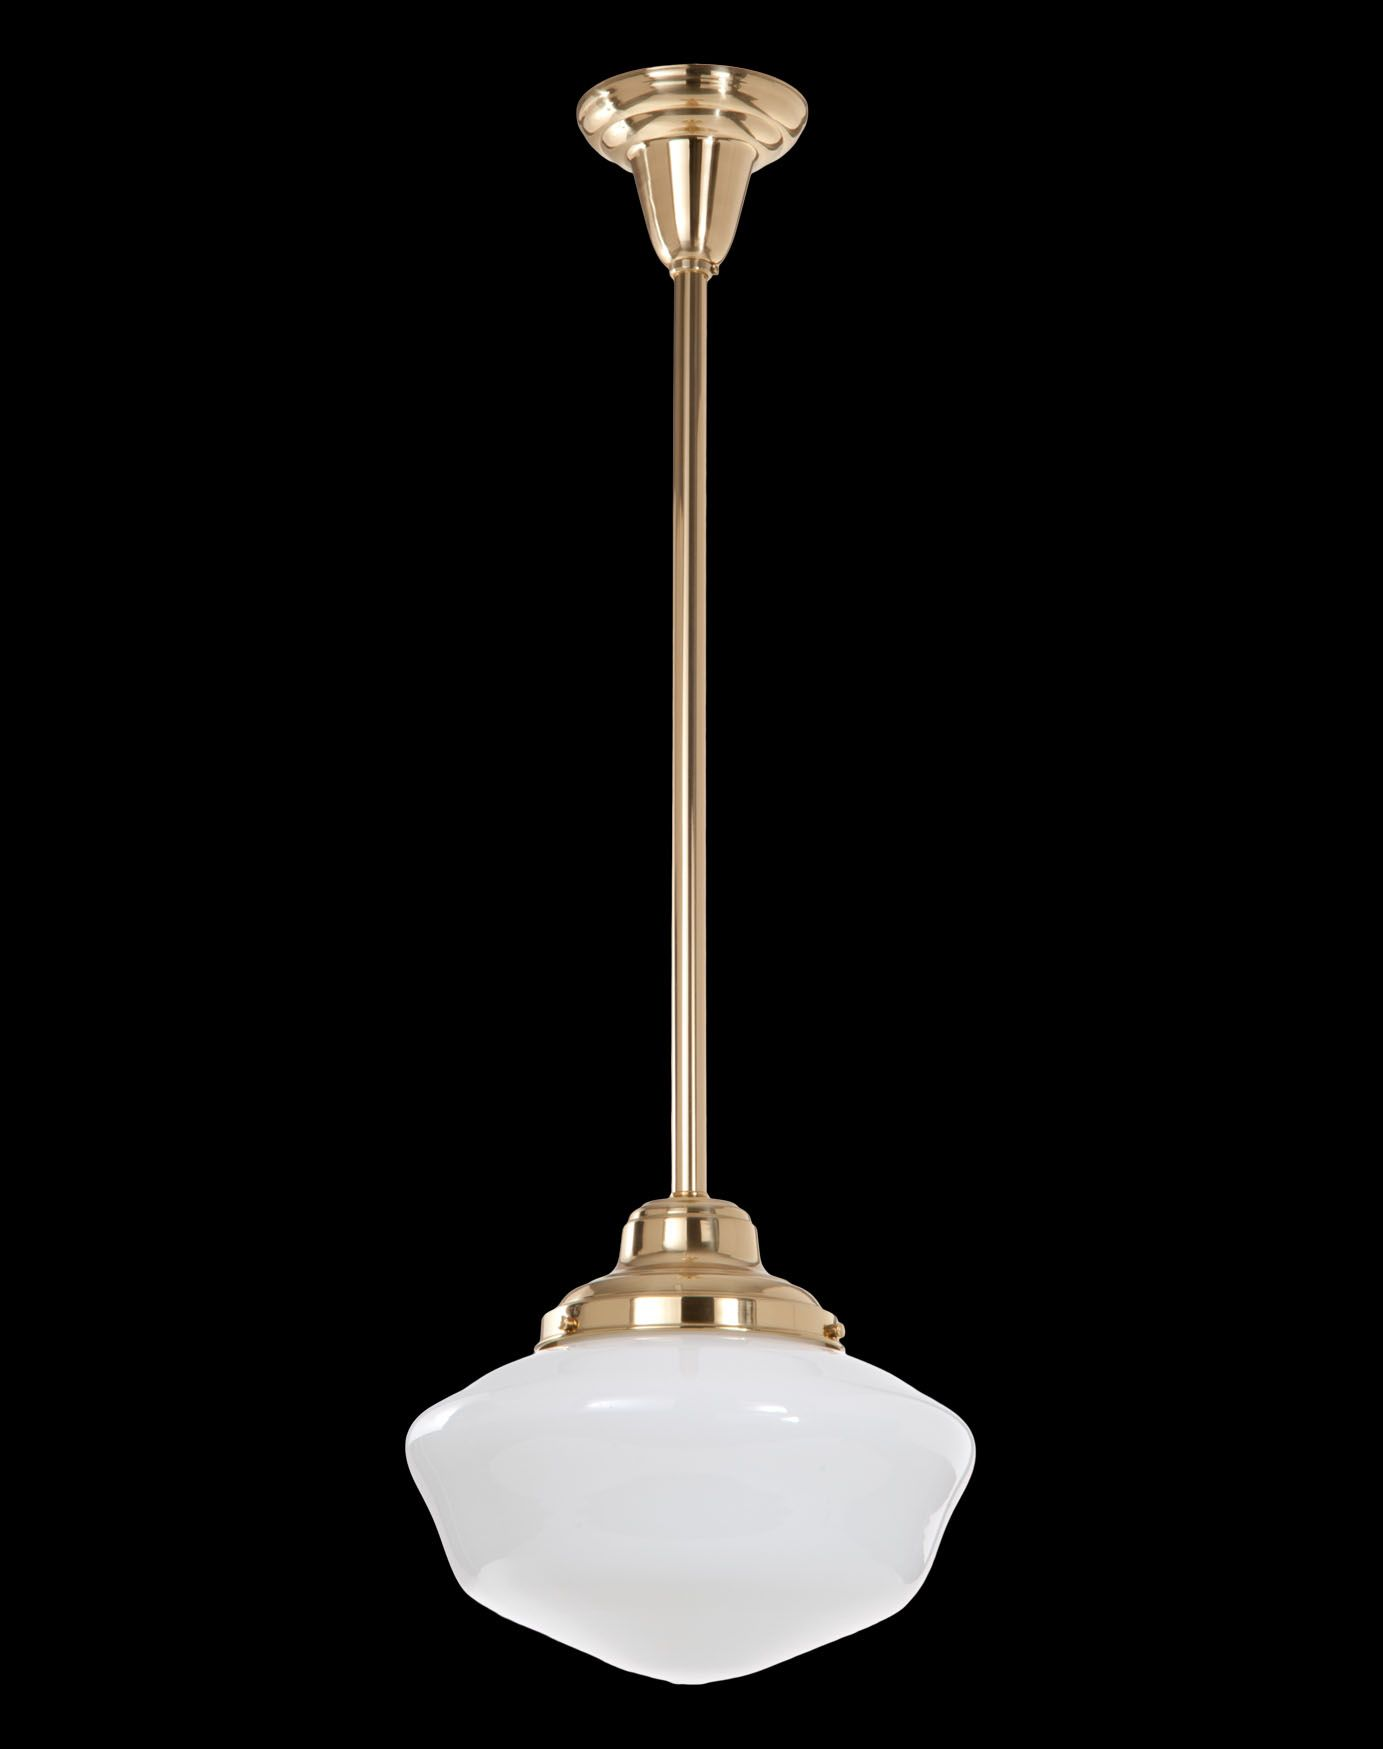 exquisite lighting. Fixtures Light For Victorian Outdoor And Exquisite Queen Anne Lighting